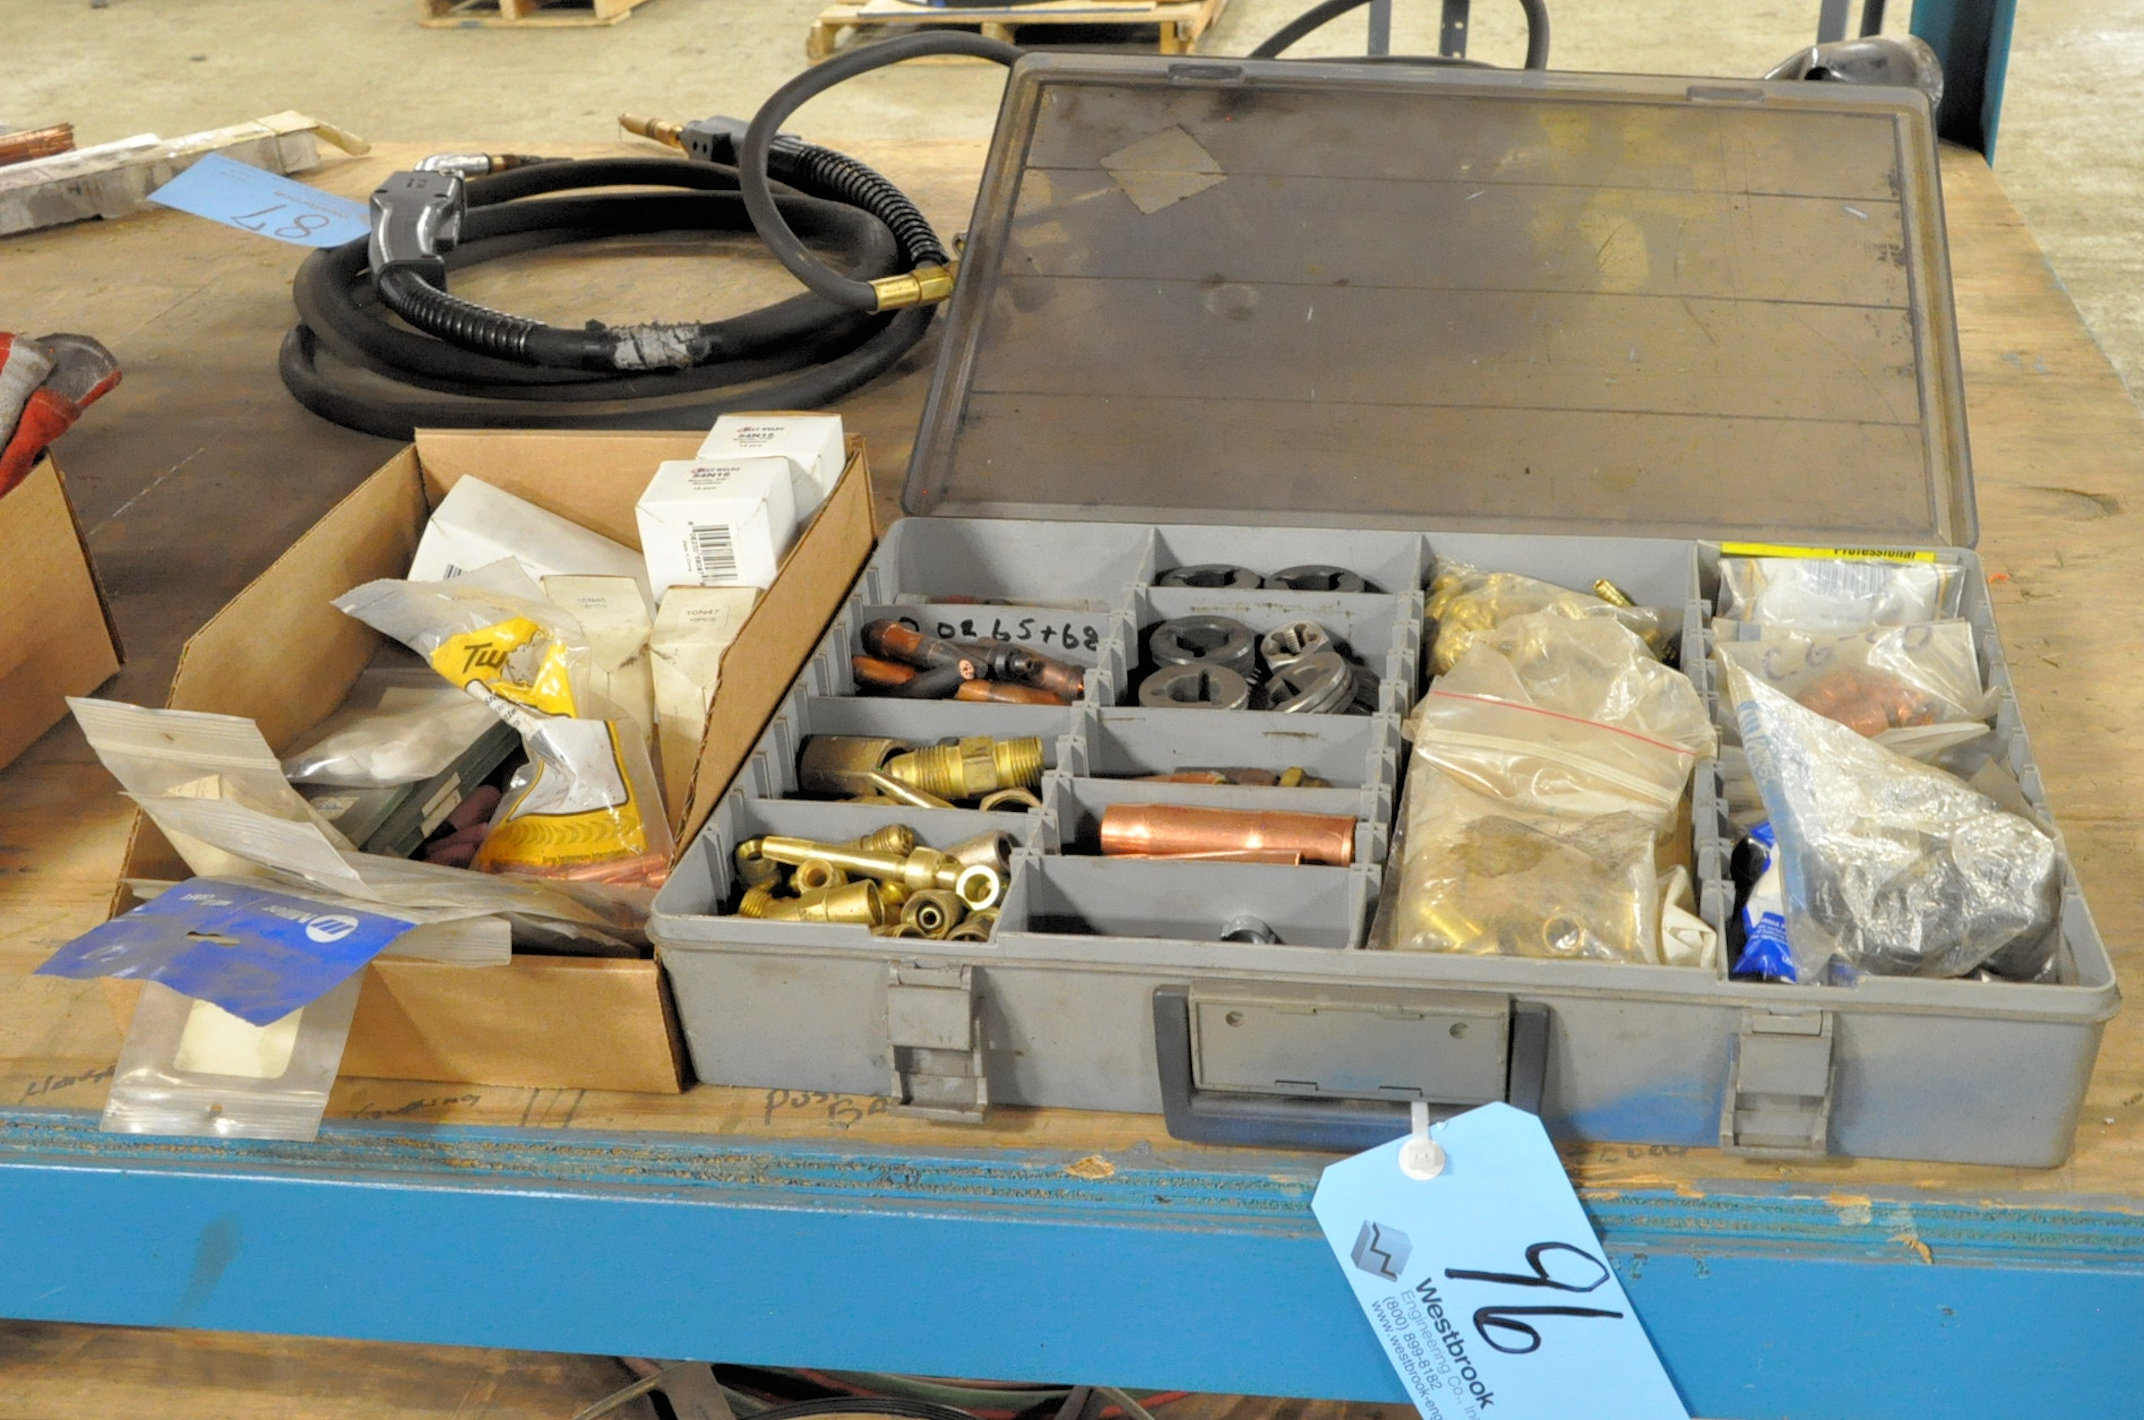 Lot-Mig/Tig Welding Tips and Accessories in (1) Service Kit and (1) Box